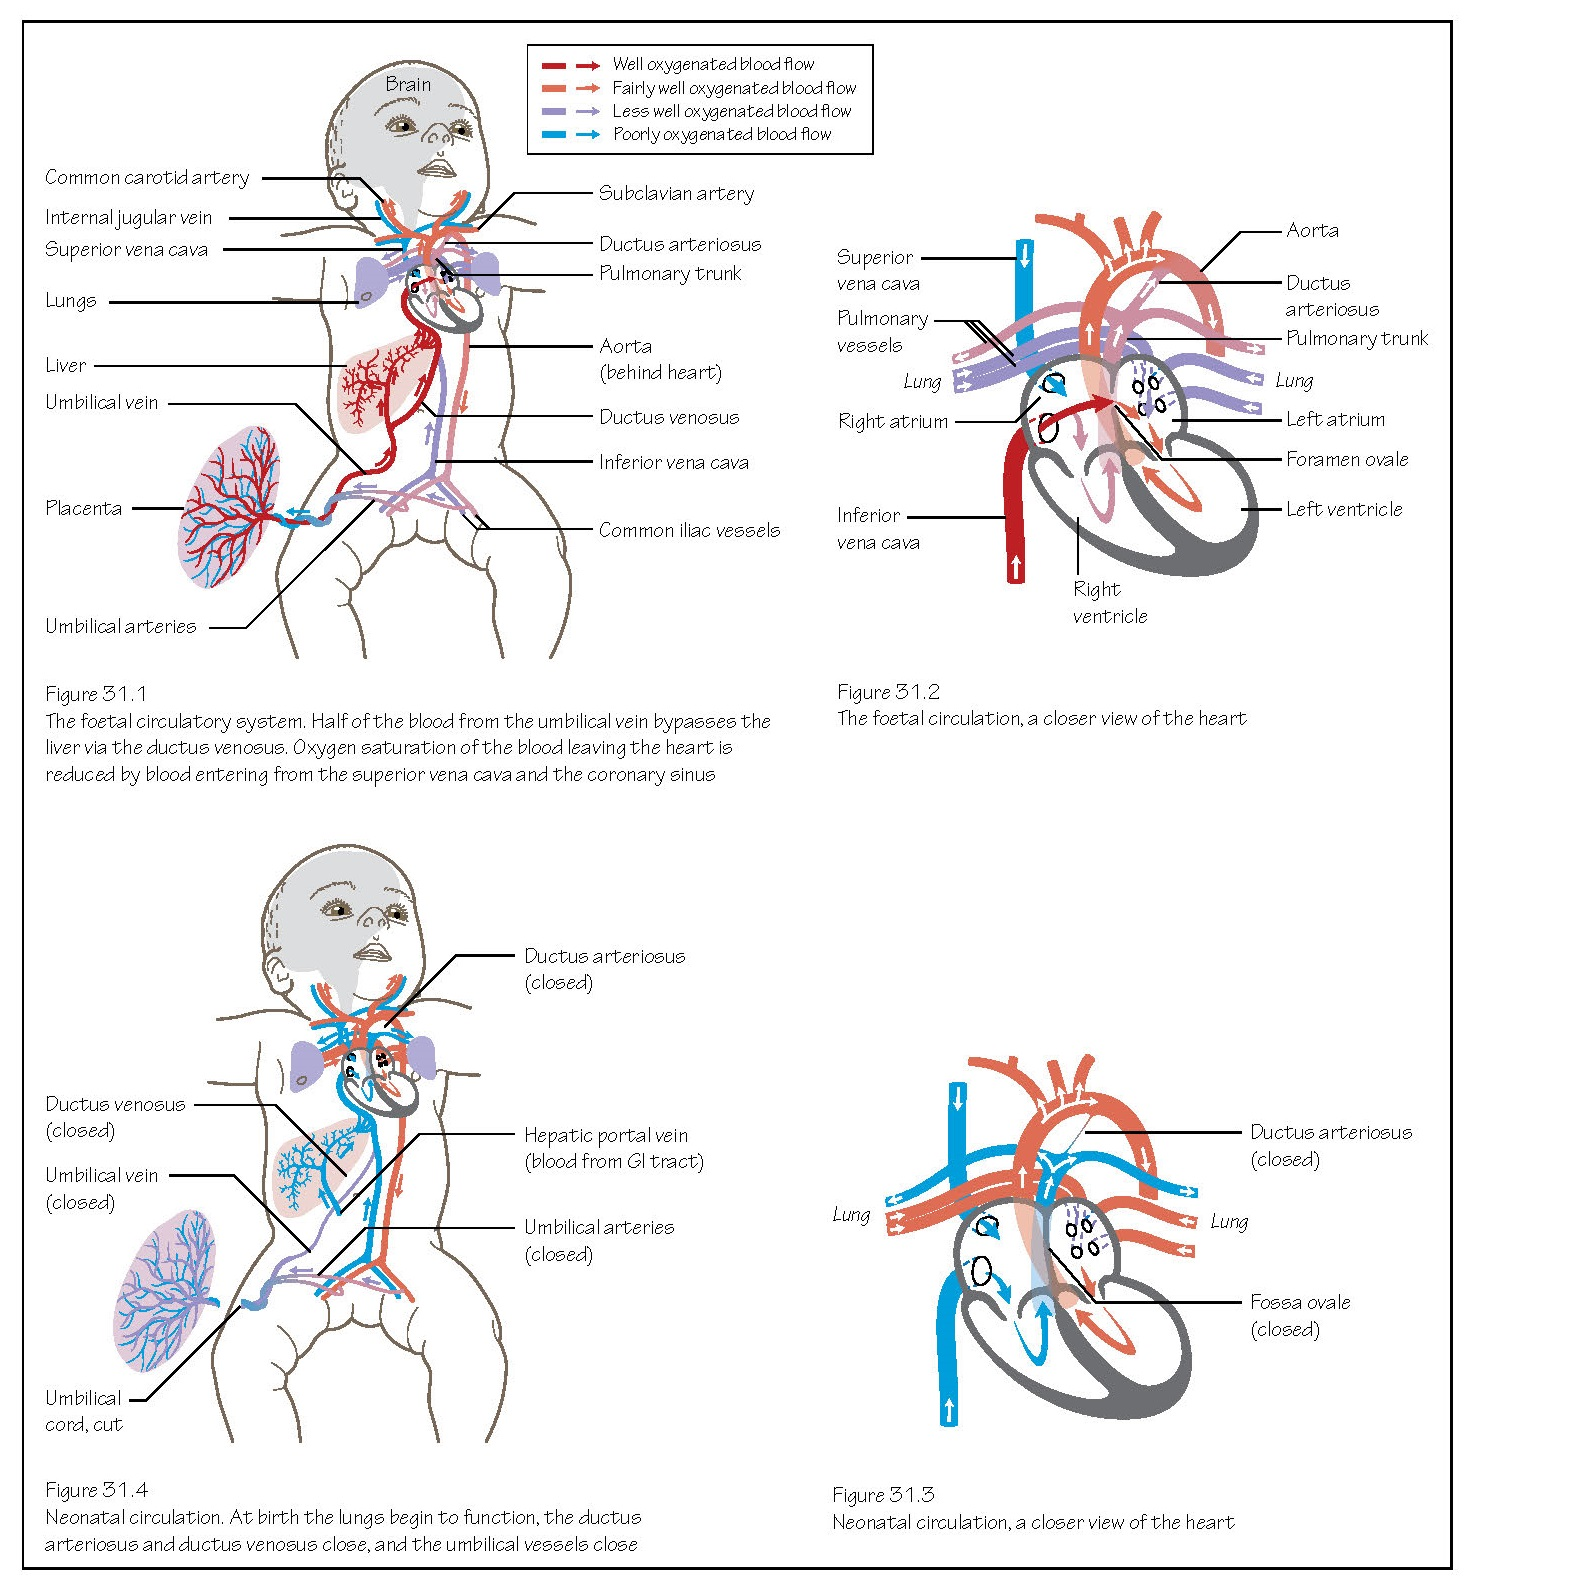 Circulation System: Changes At Birth, Foetal blood circulation, Ductus venosus, Ductus arteriosus, Foramen ovale,